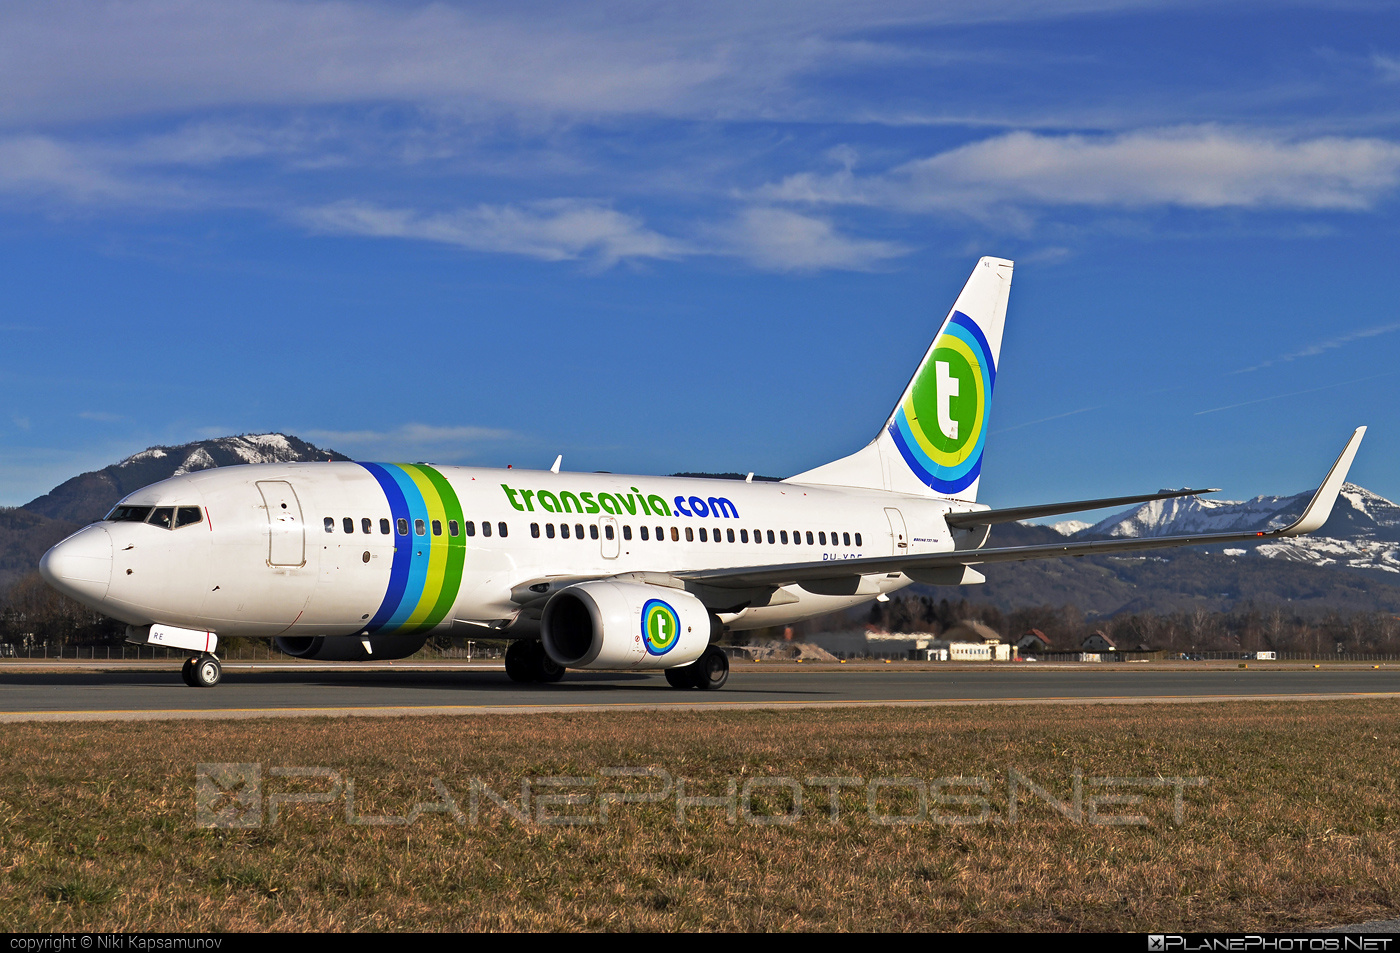 Boeing 737-700 - PH-XRE operated by Transavia Airlines #b737 #b737nextgen #b737ng #boeing #boeing737 #transavia #transaviaairlines